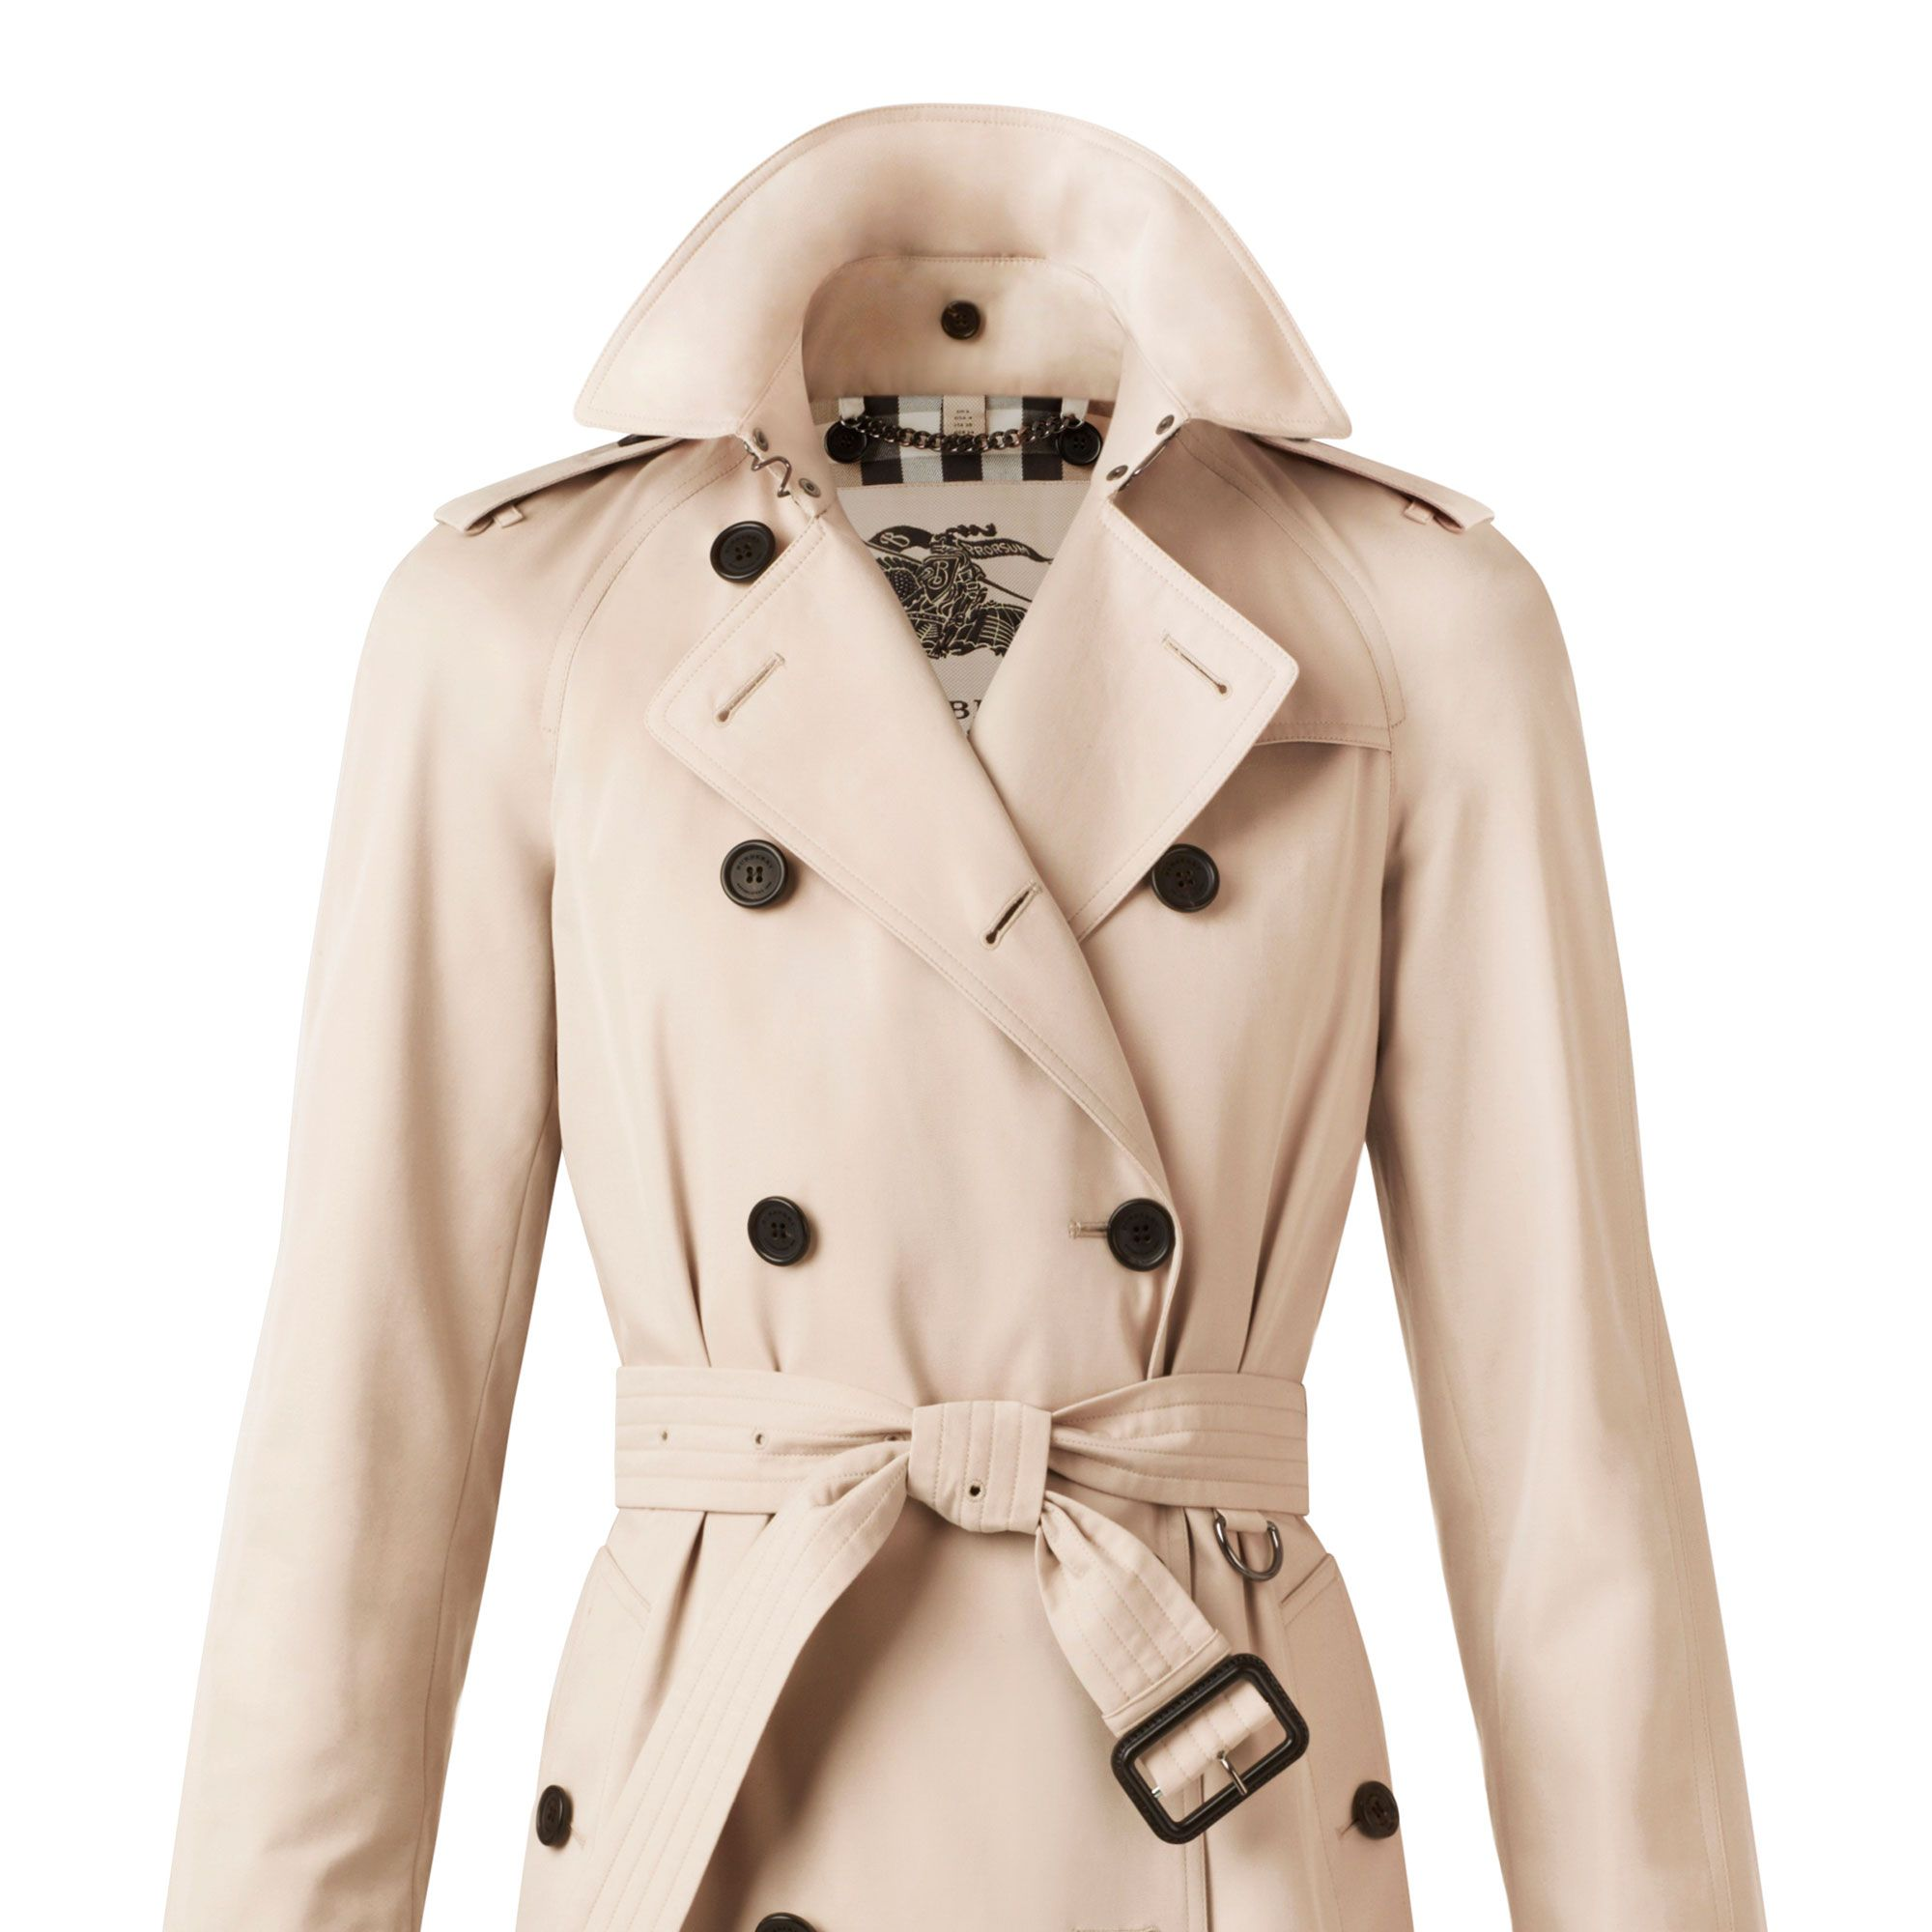 """A heritage brand that pushes the meaning further, Burberry's original trench continues as the leader of the pack.<em>Burberry trench coat, $1,695, <a href=""""http://us.burberry.com/the-westminster-long-heritage-trench-coat-p39008451"""" target=""""_blank"""">burberry.com</a>.</em>"""